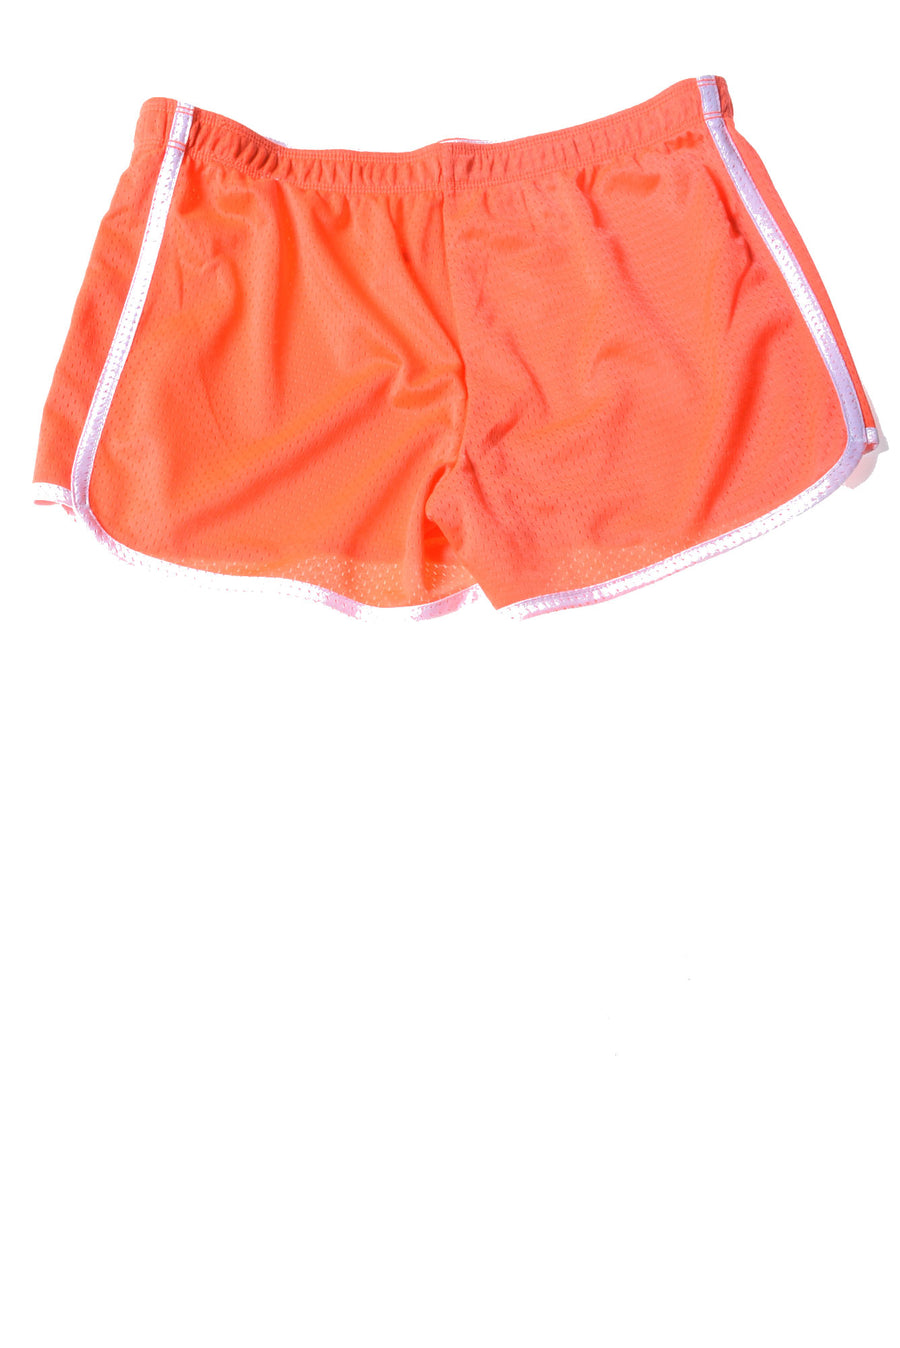 USED Justice Girl's Shorts 18 Neon Orange